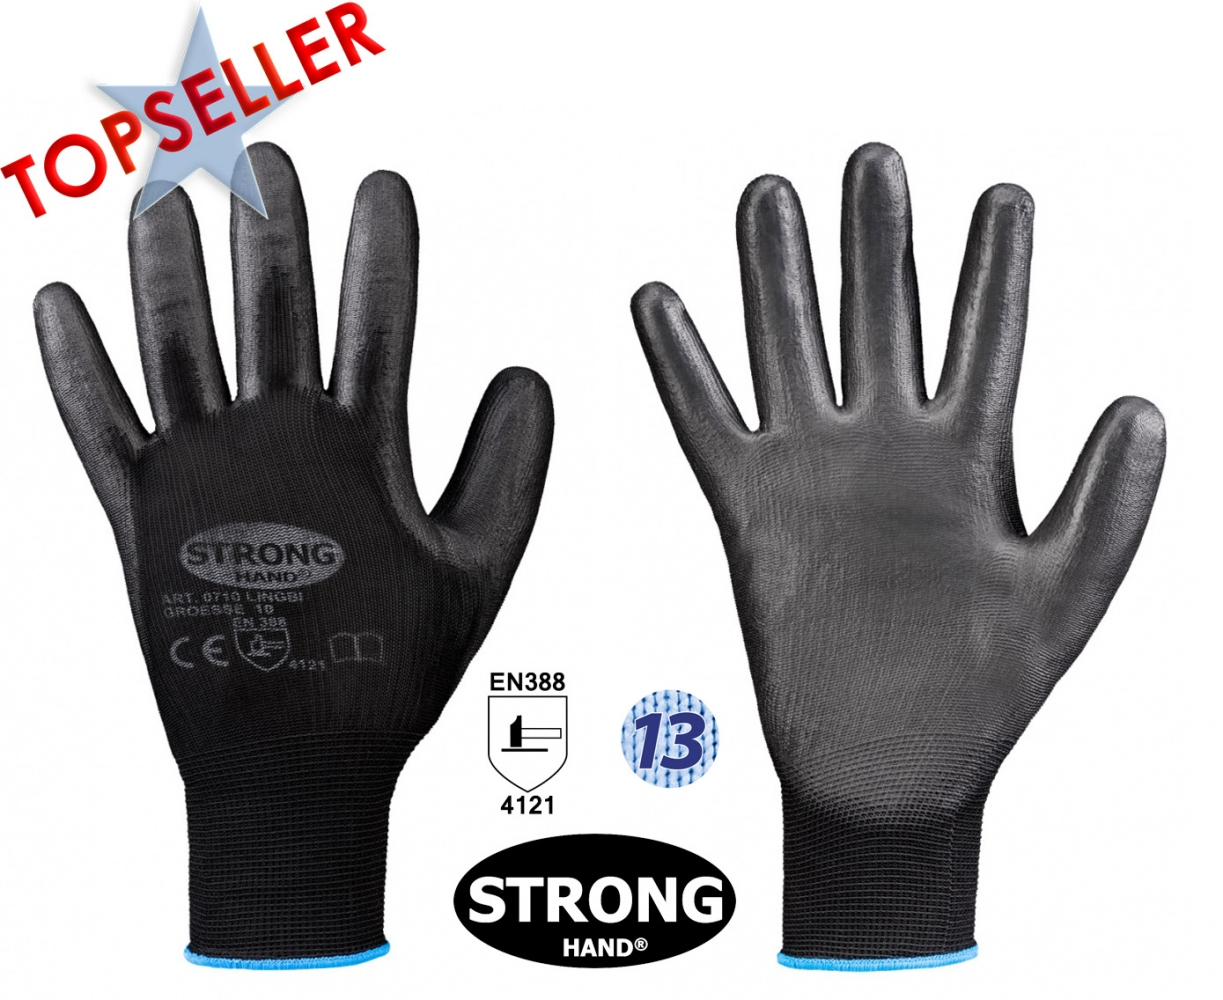 pics/Feldtmann 2016/E.I.S. Topseller/stronghand-0710-lingbi-pu-coated-safety-gloves-nylon-seamless-topseller.jpg